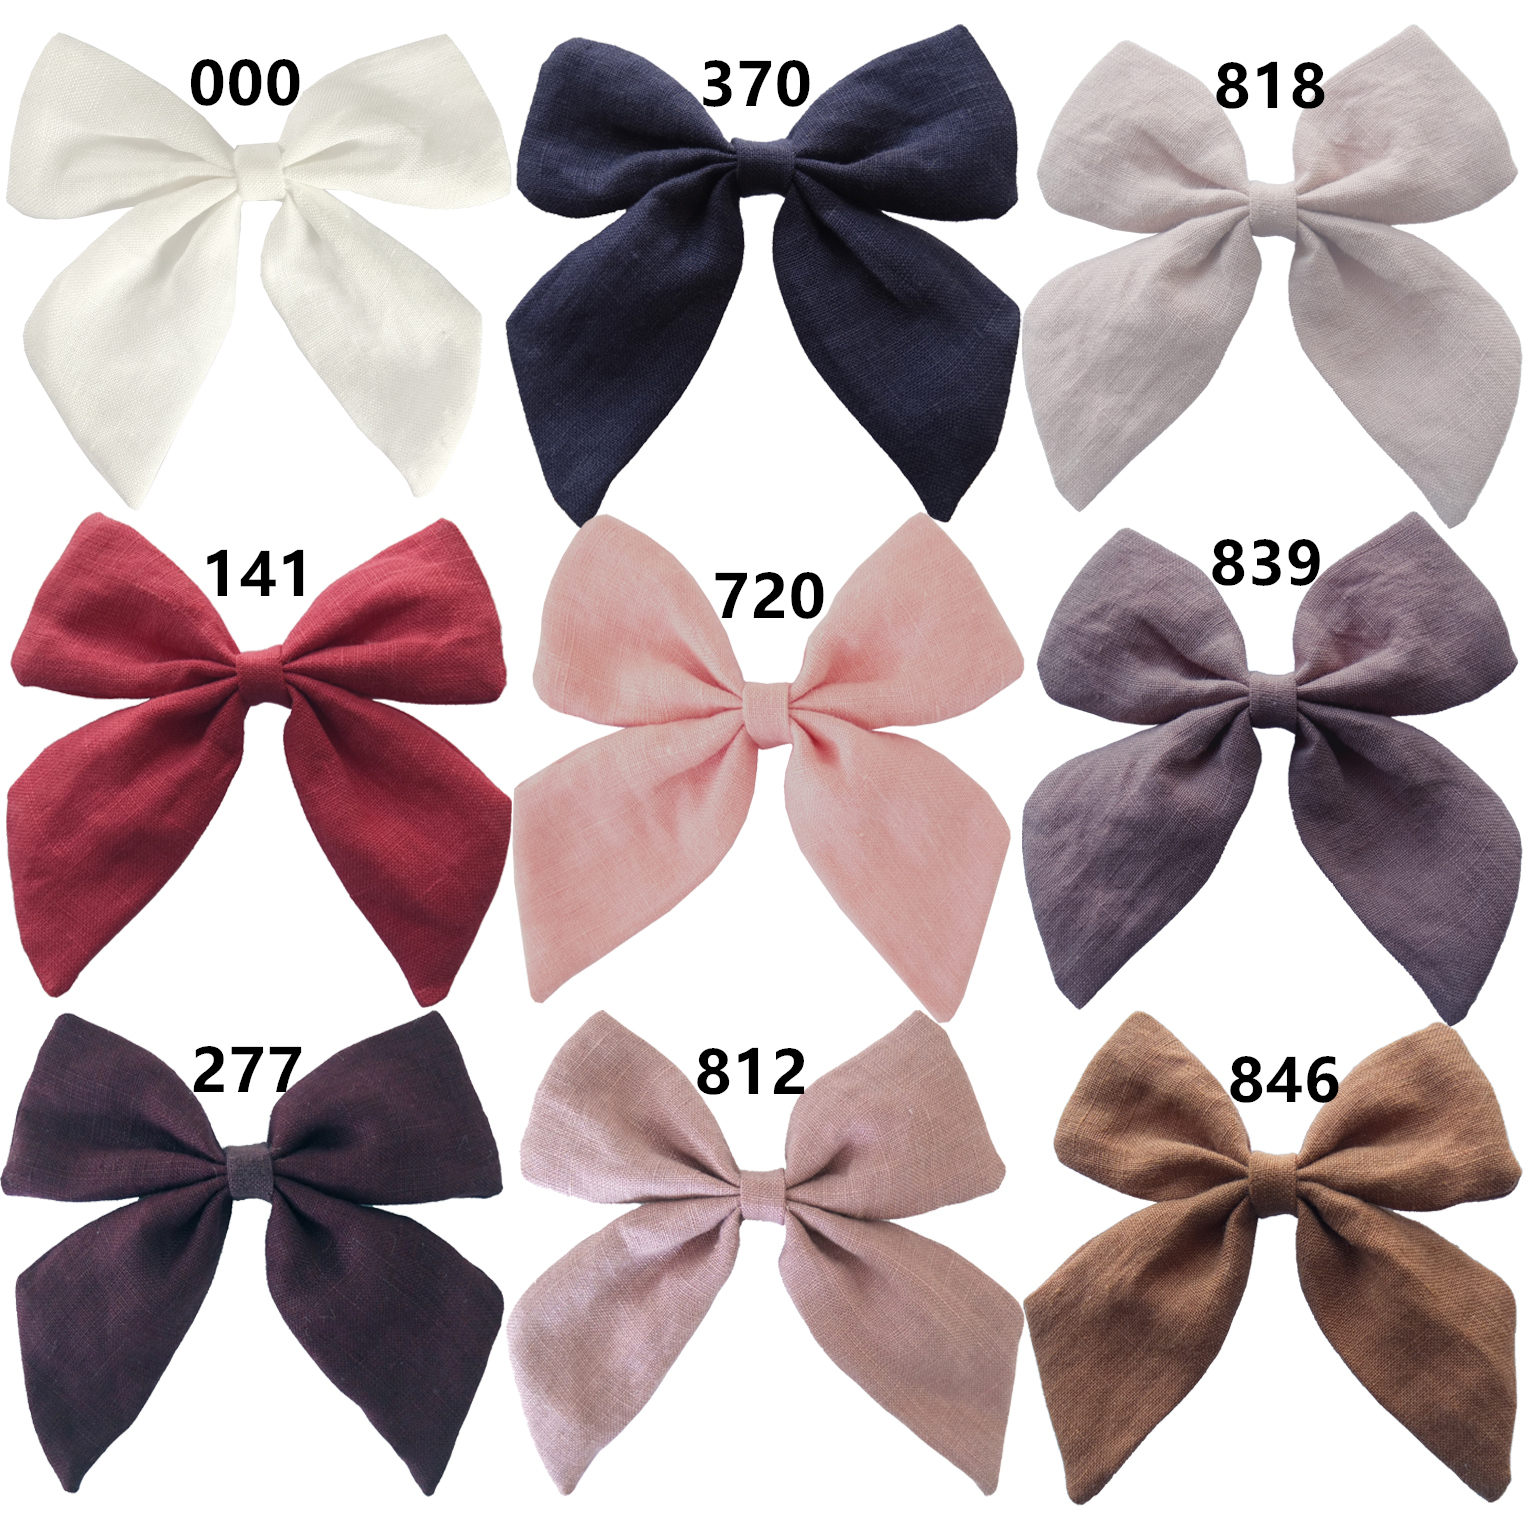 Cotton Fabric Bows Boutique Hair Bow Hair Clips Sailor Bow Hair Barrettes Hairgrips Girls Women Hair Accessories Headwear